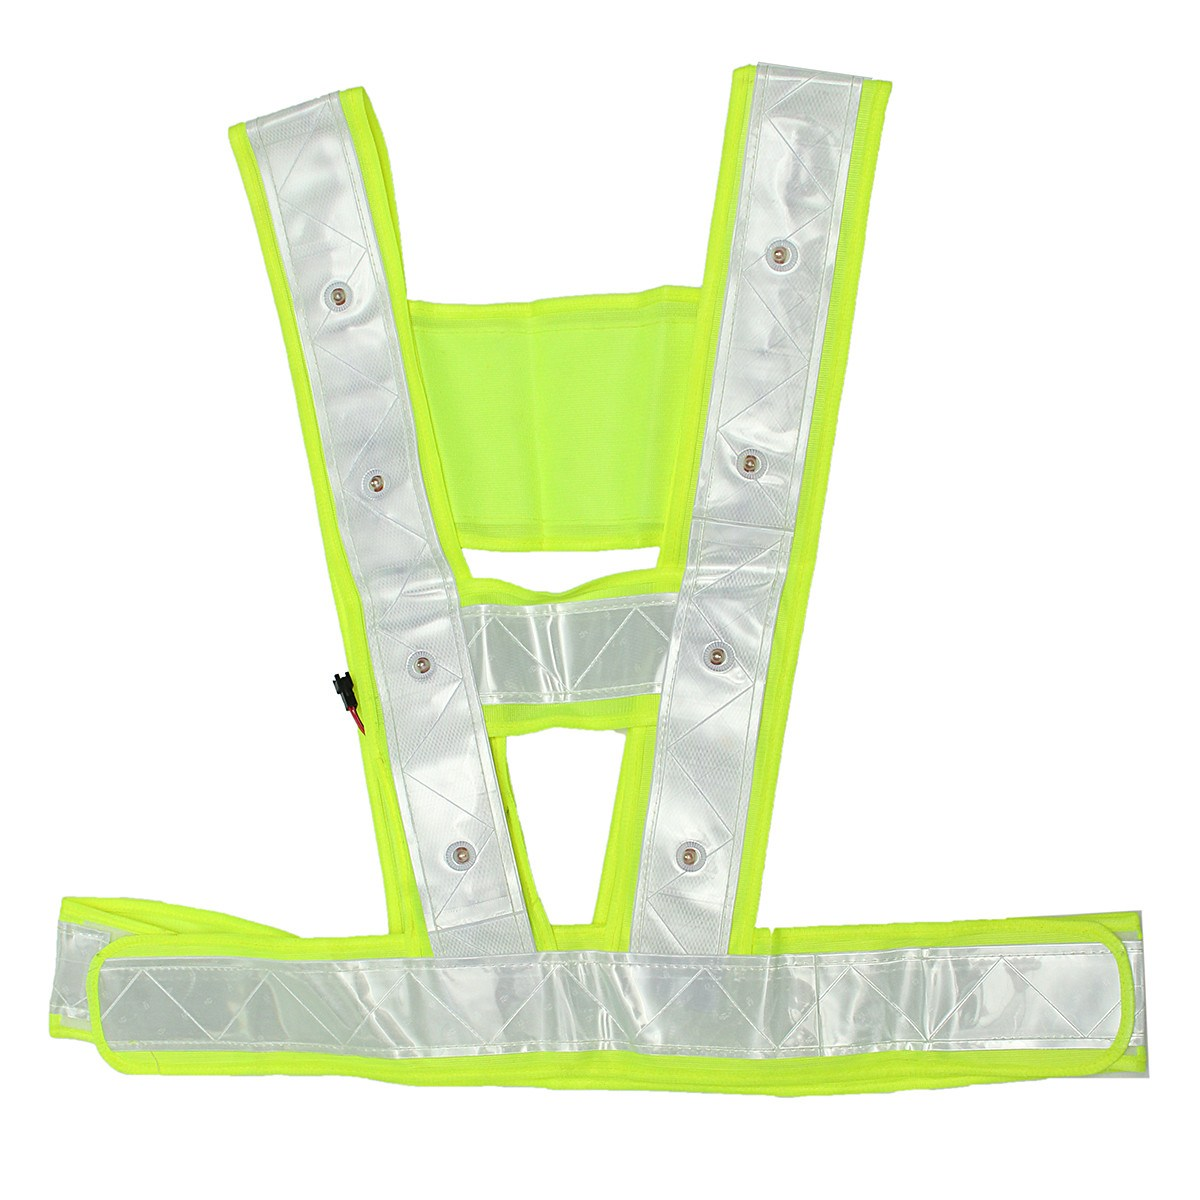 NEW Cycling Running 16 LED Light Up Reflective Stripes Safety Vest High Visibility Workplace Safety Clothing